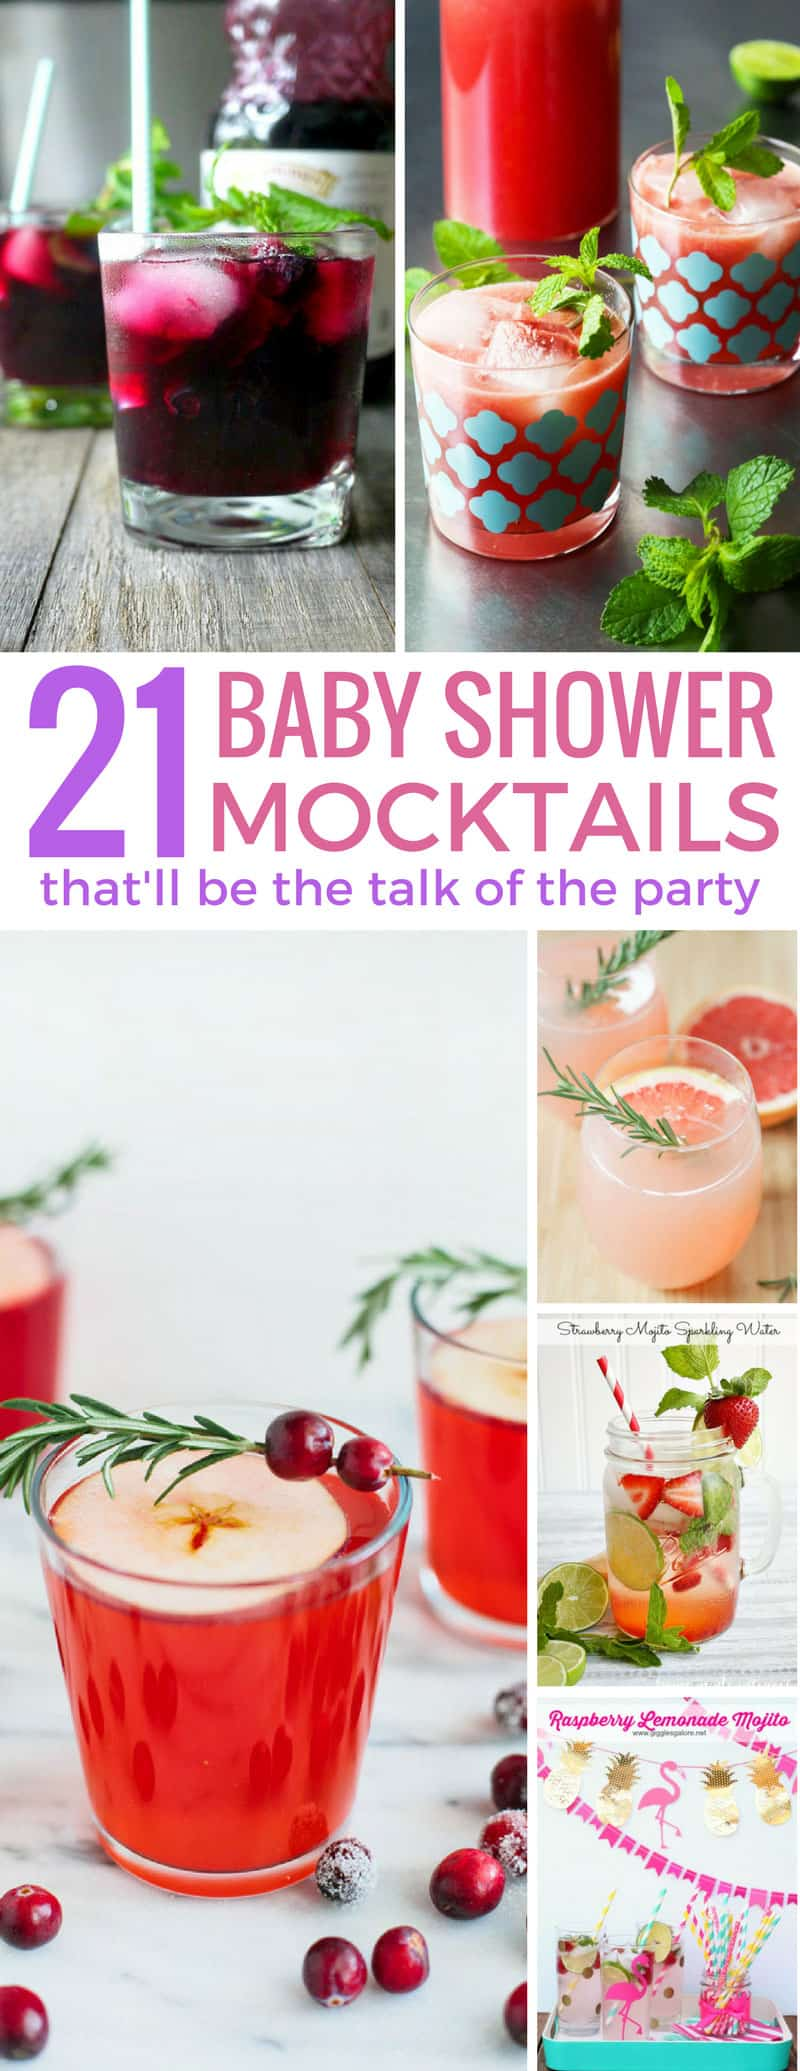 These baby shower mocktails taste amazing! They're great for kids and designated drivers too!